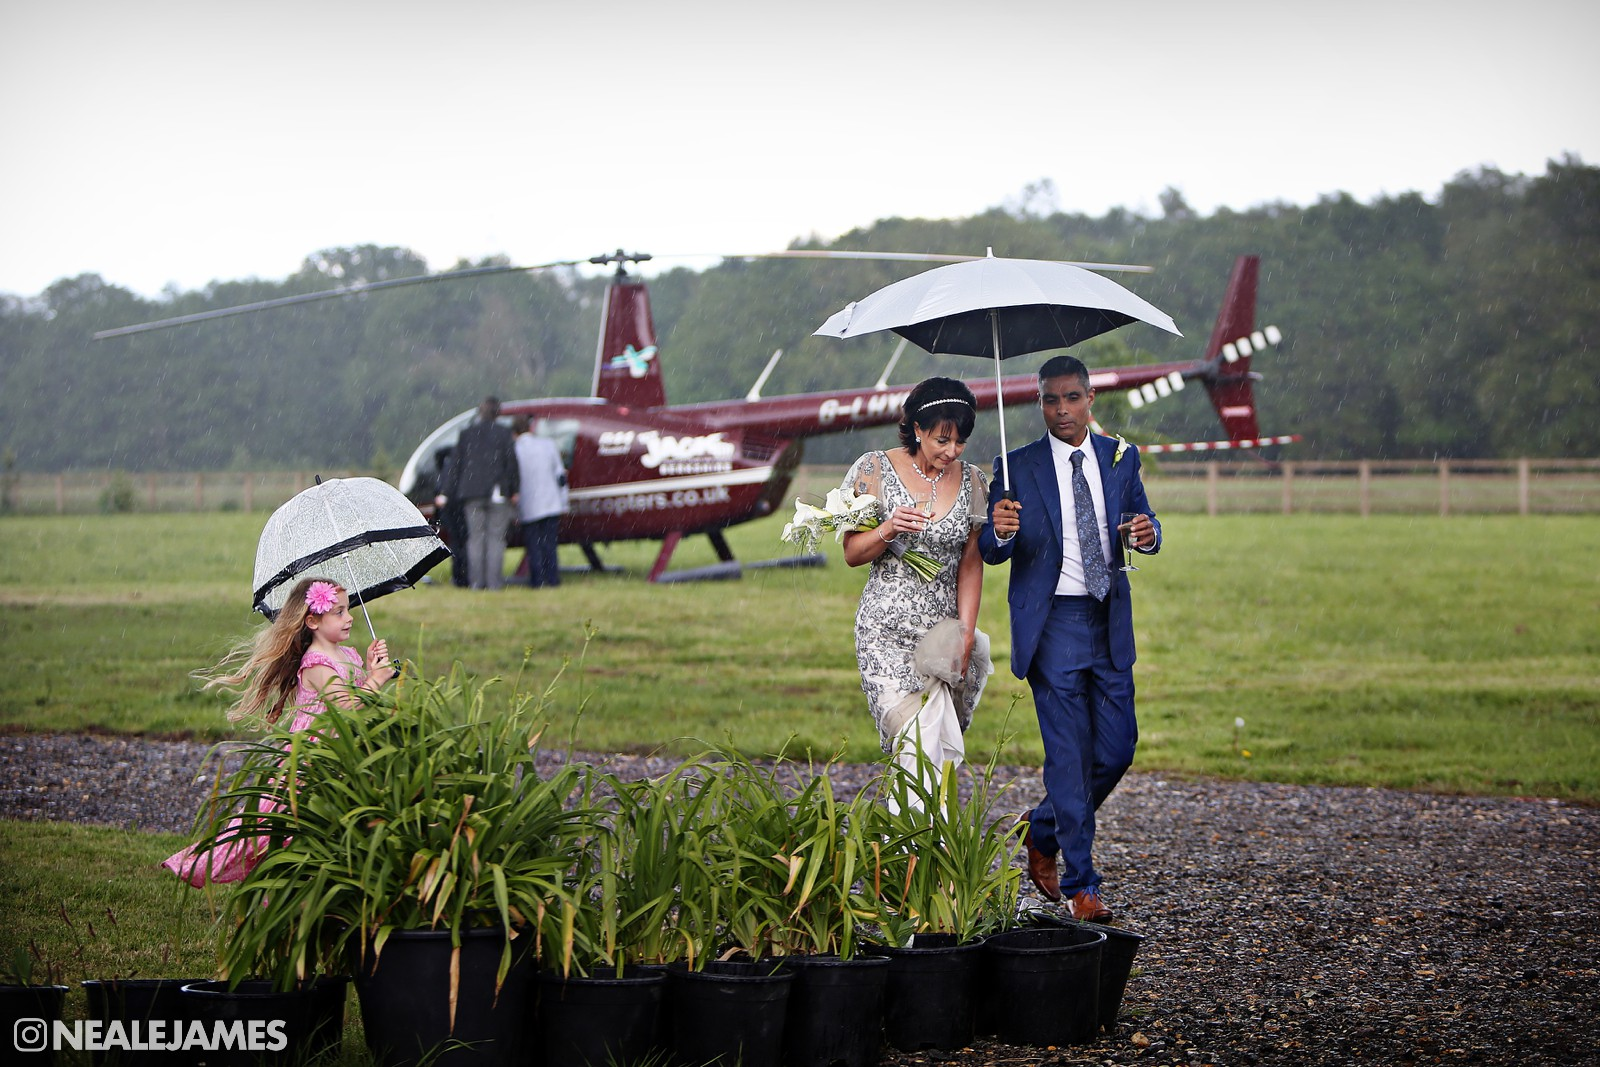 Colour photograph of a helicopter arriving at a wedding with bride and groom